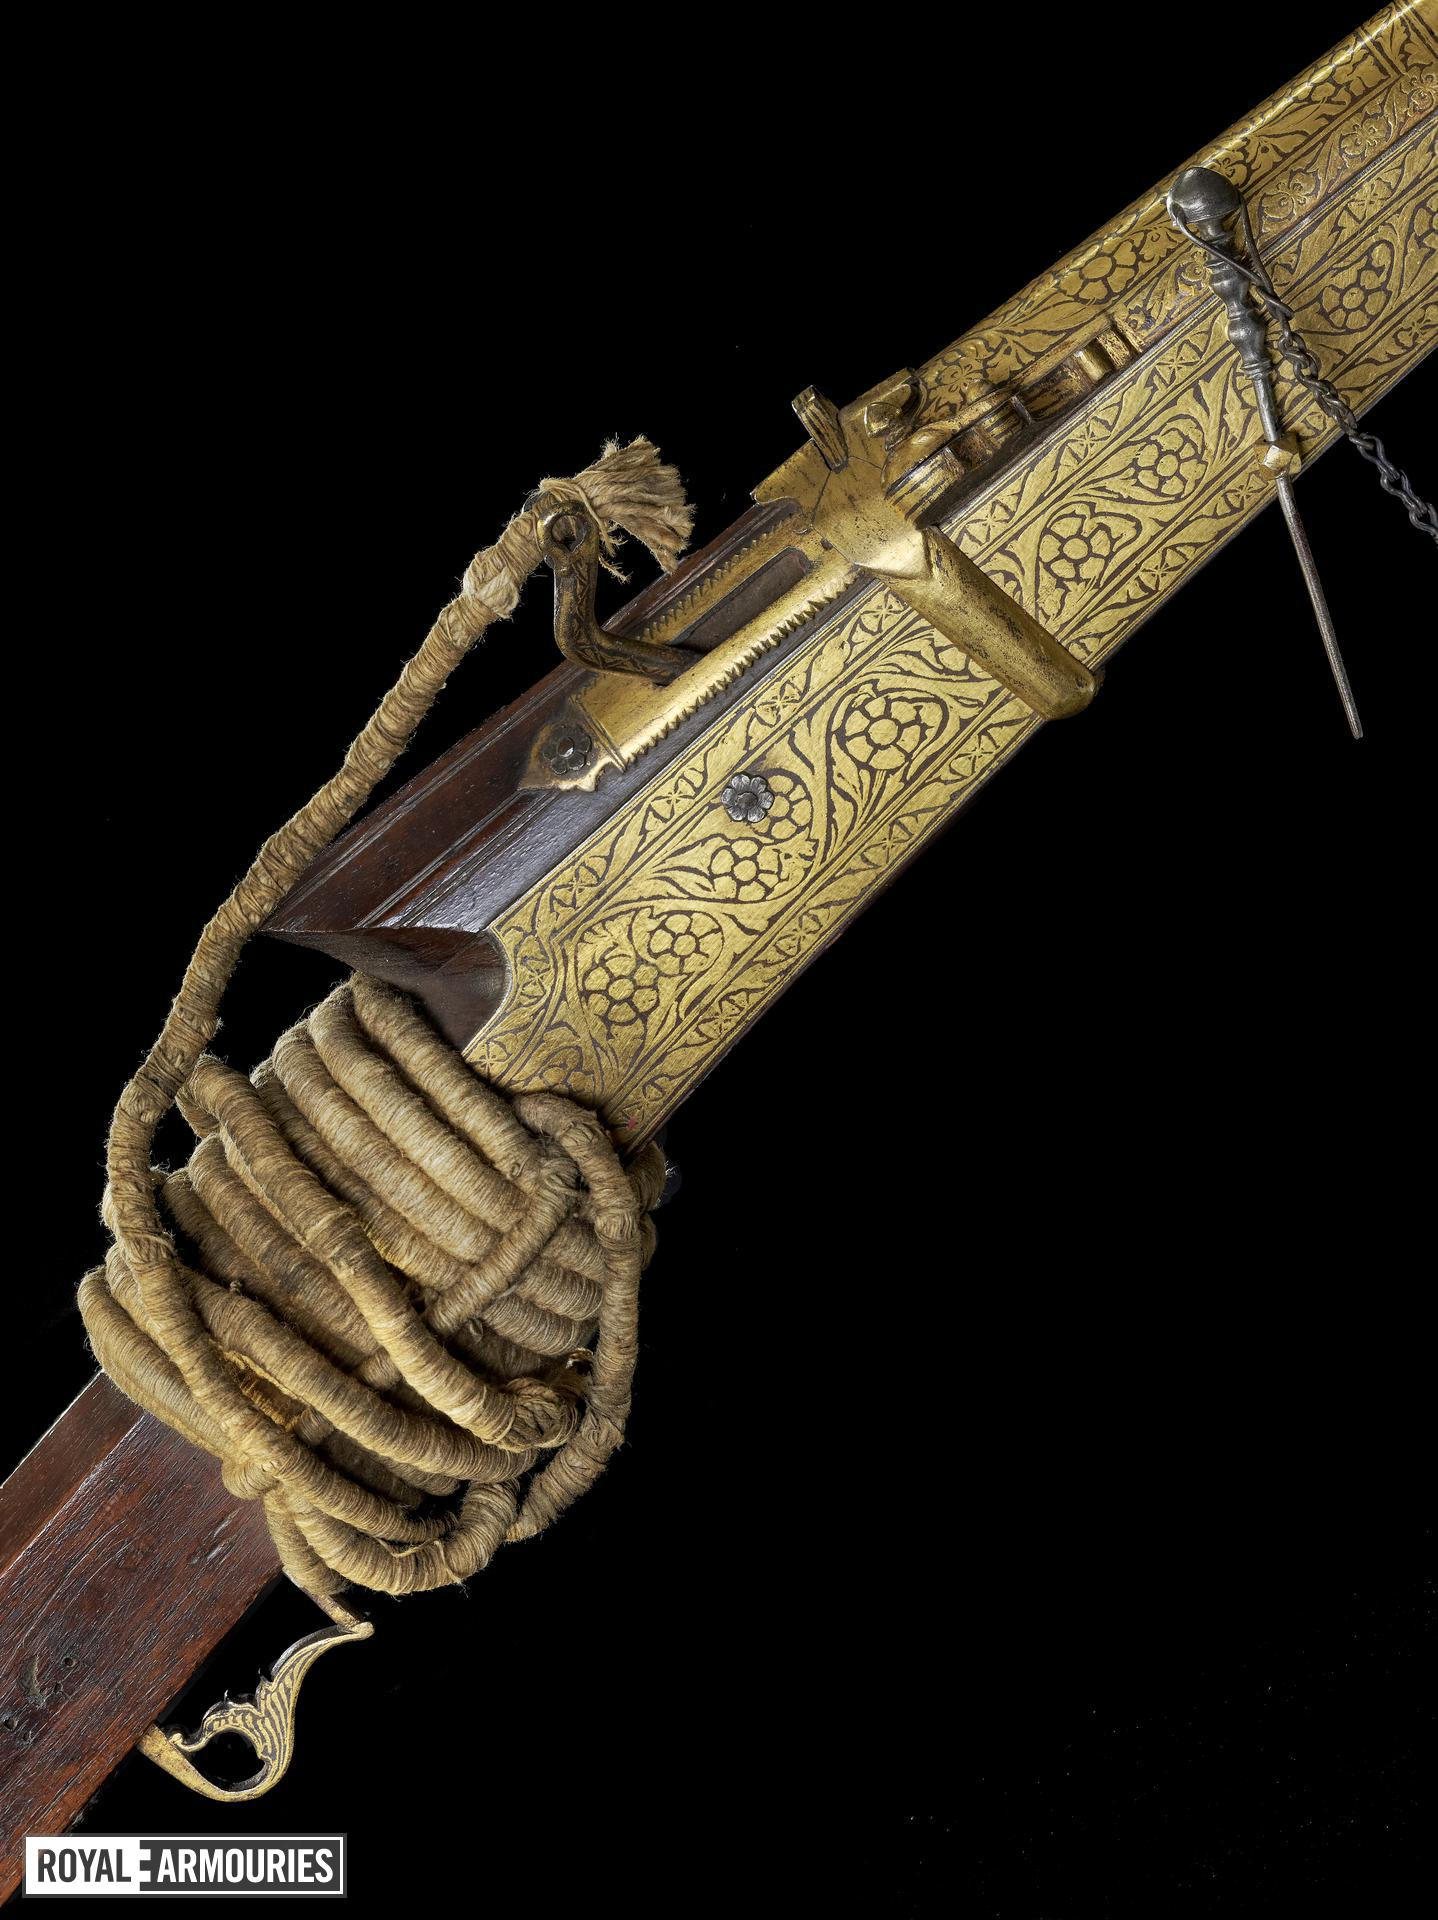 Matchlock musket (toradar) with gilded side plates.